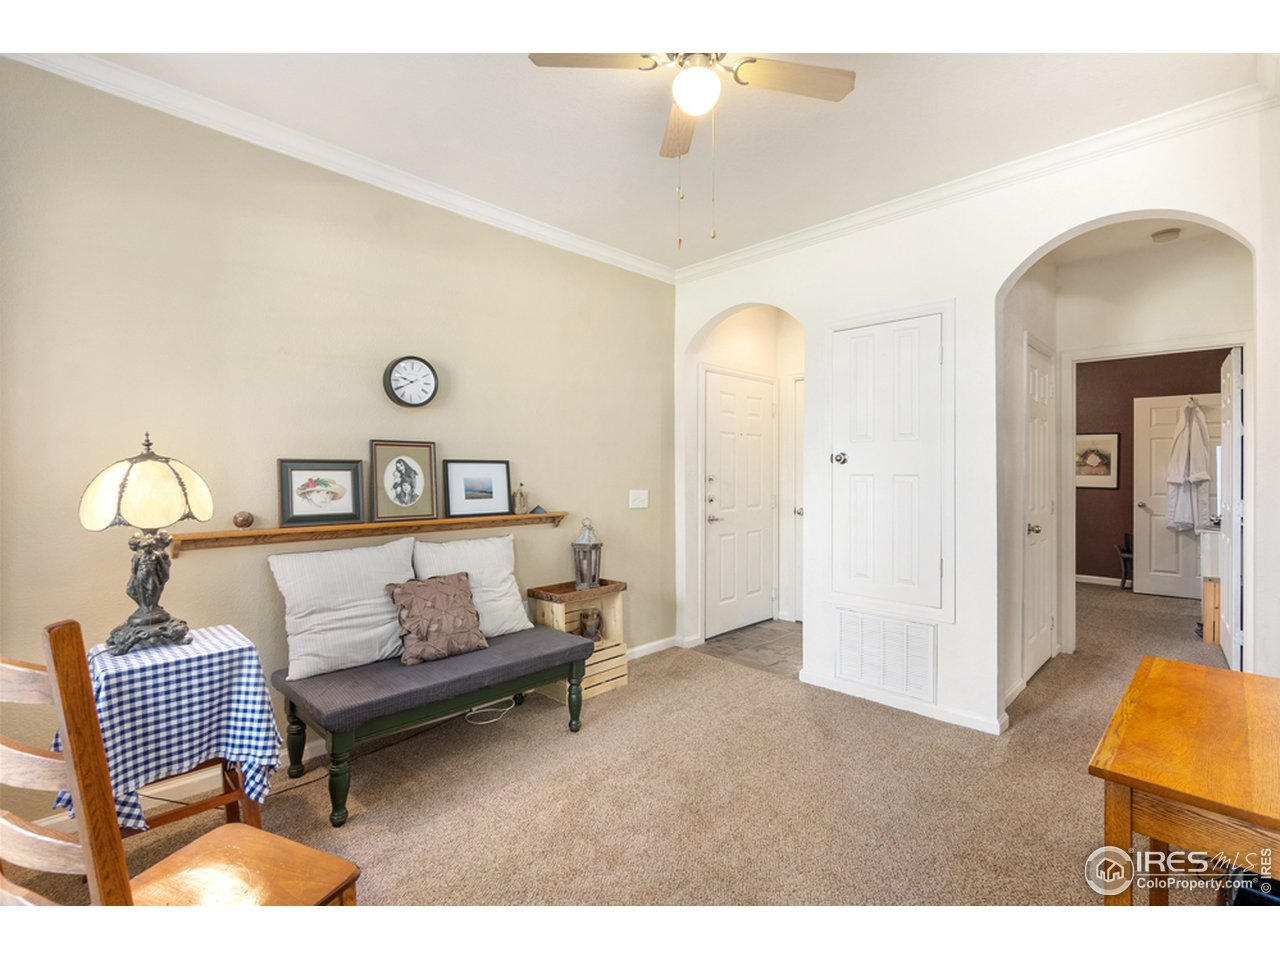 Spacious, open living room; arches, crown molding, 9 ft ceilings